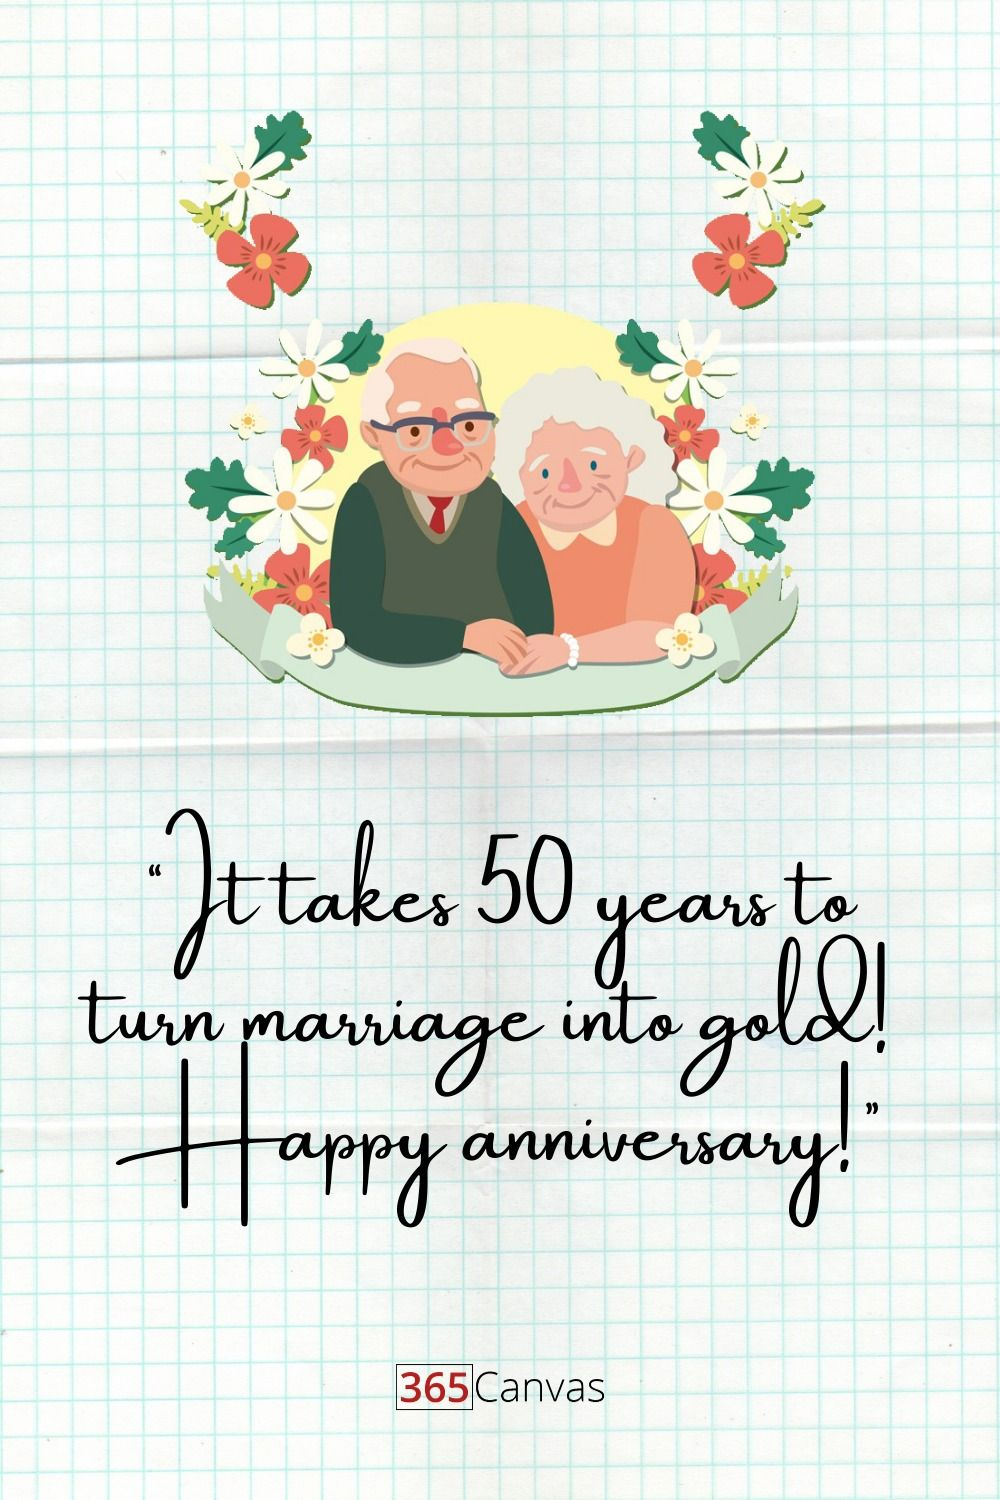 Pin on Best Anniversary Gifts Ideas by Year